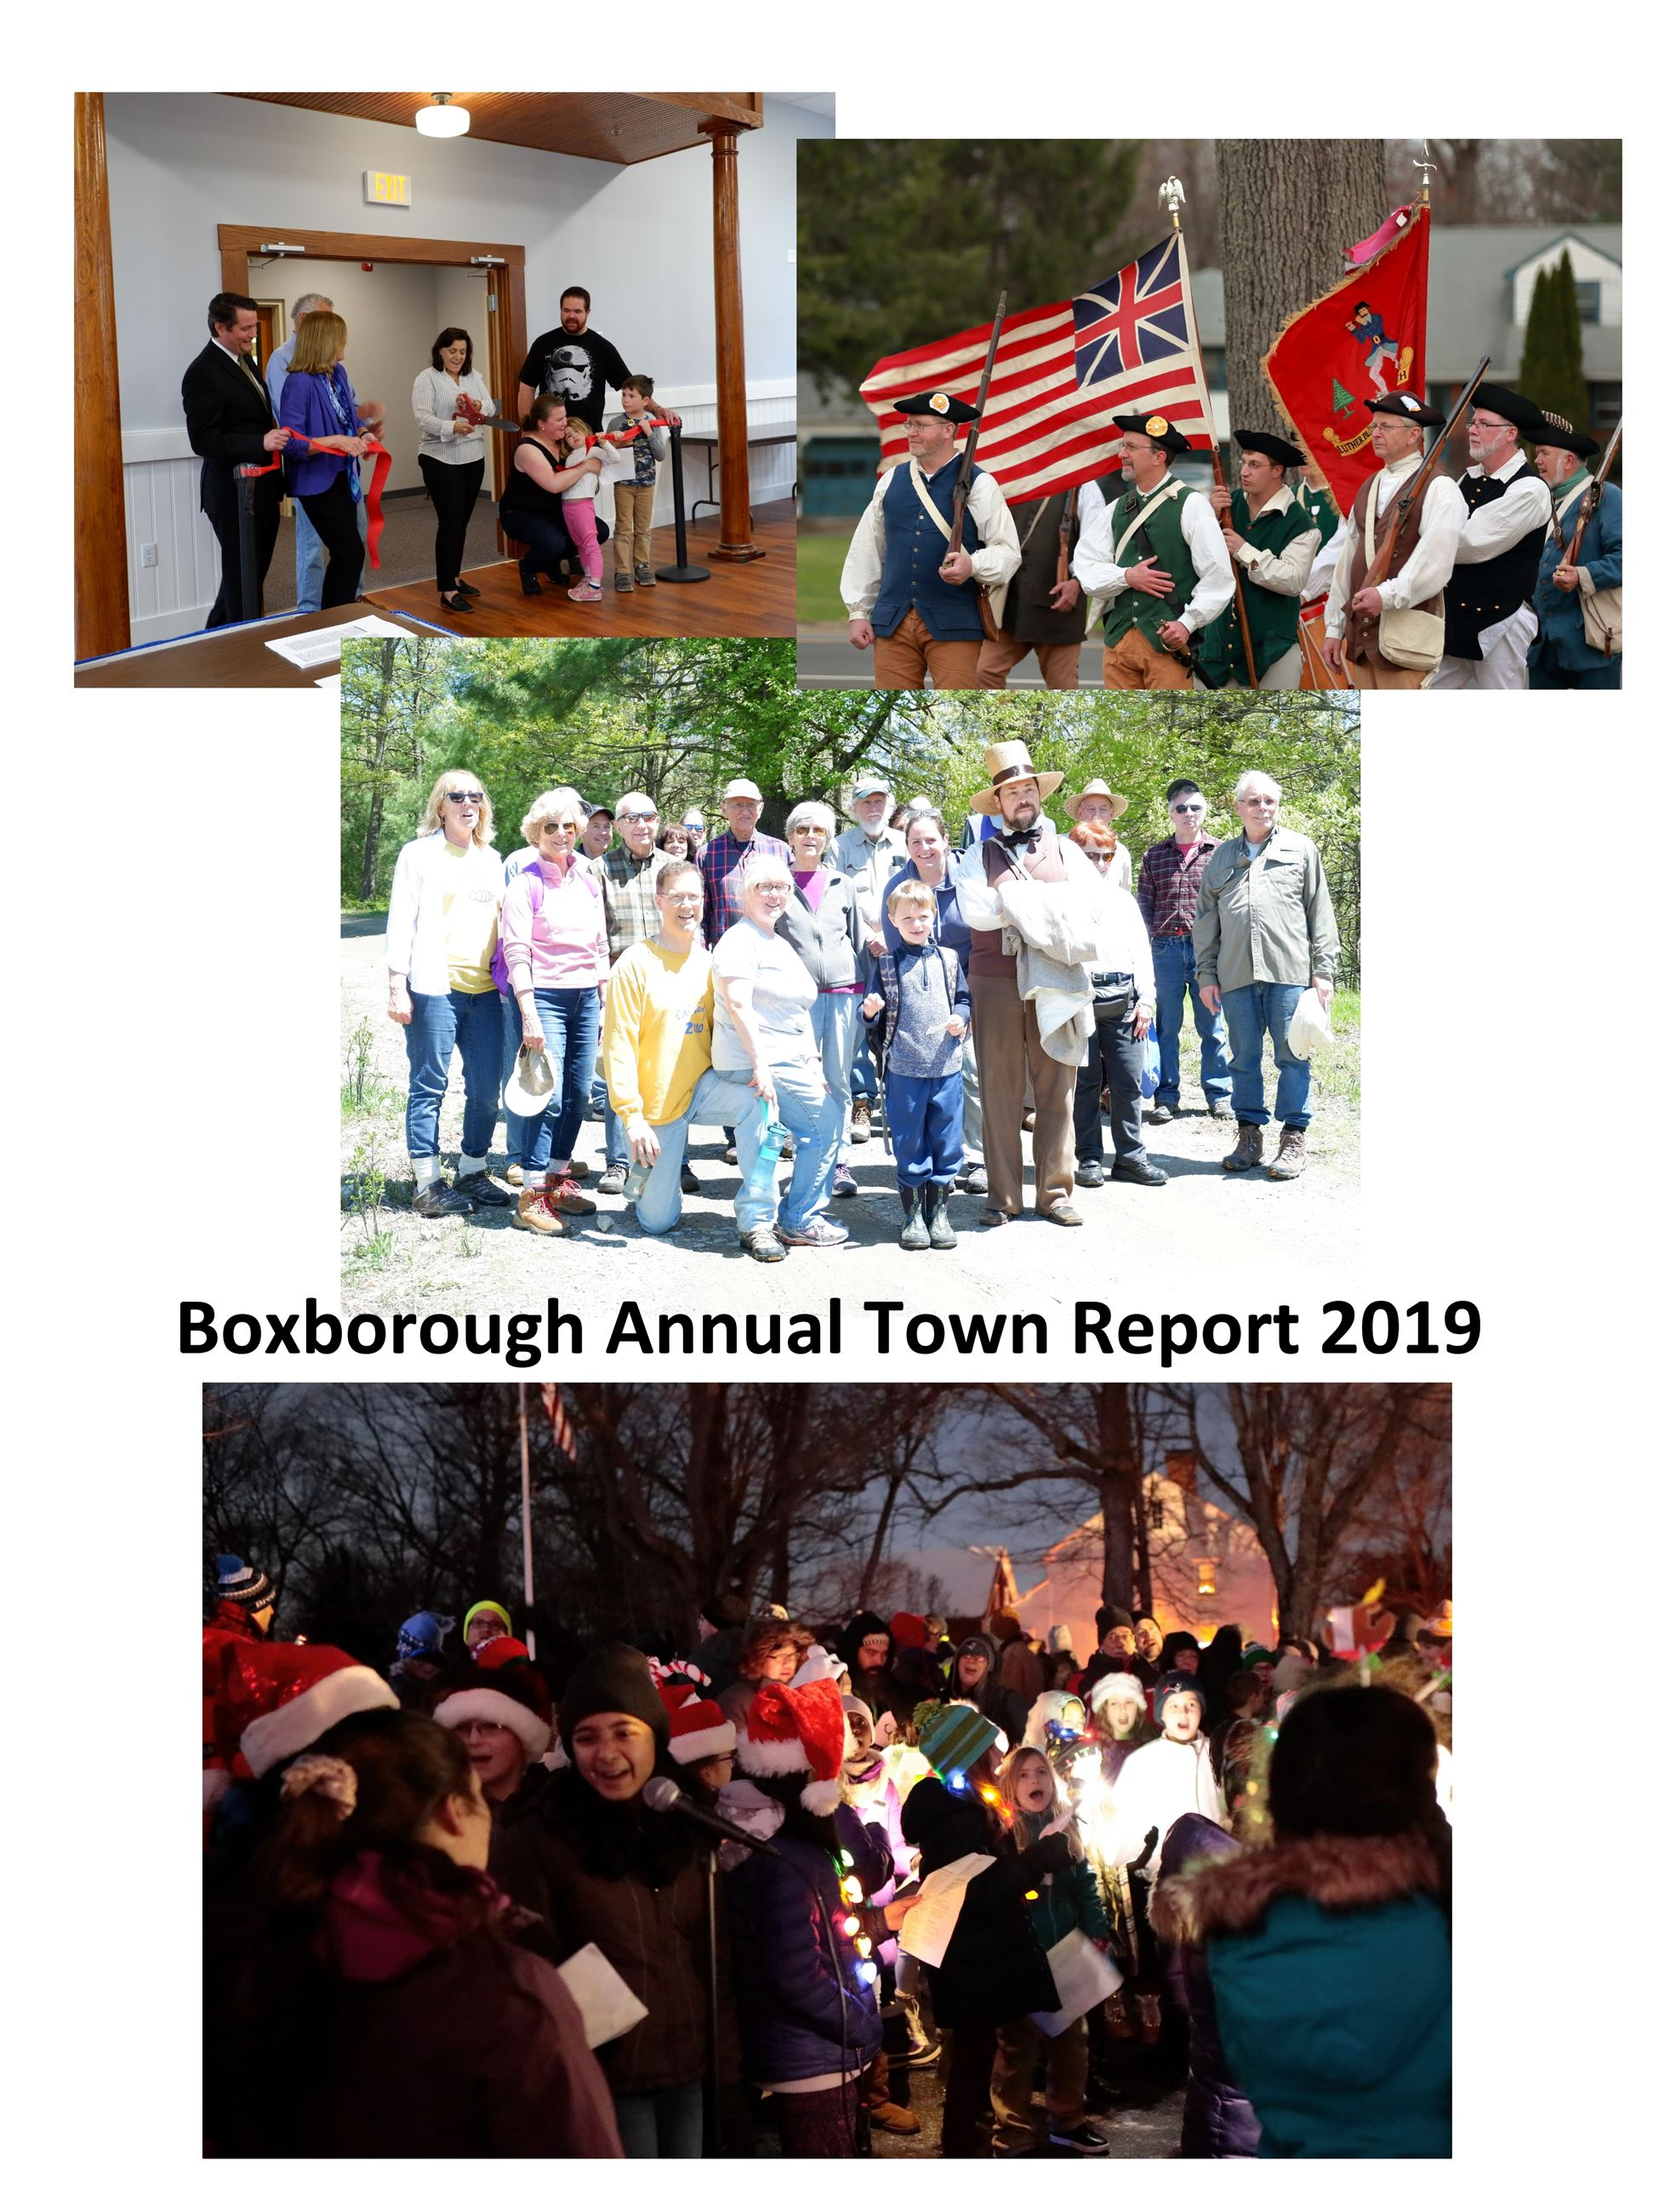 2019 Annual Town Report Cover